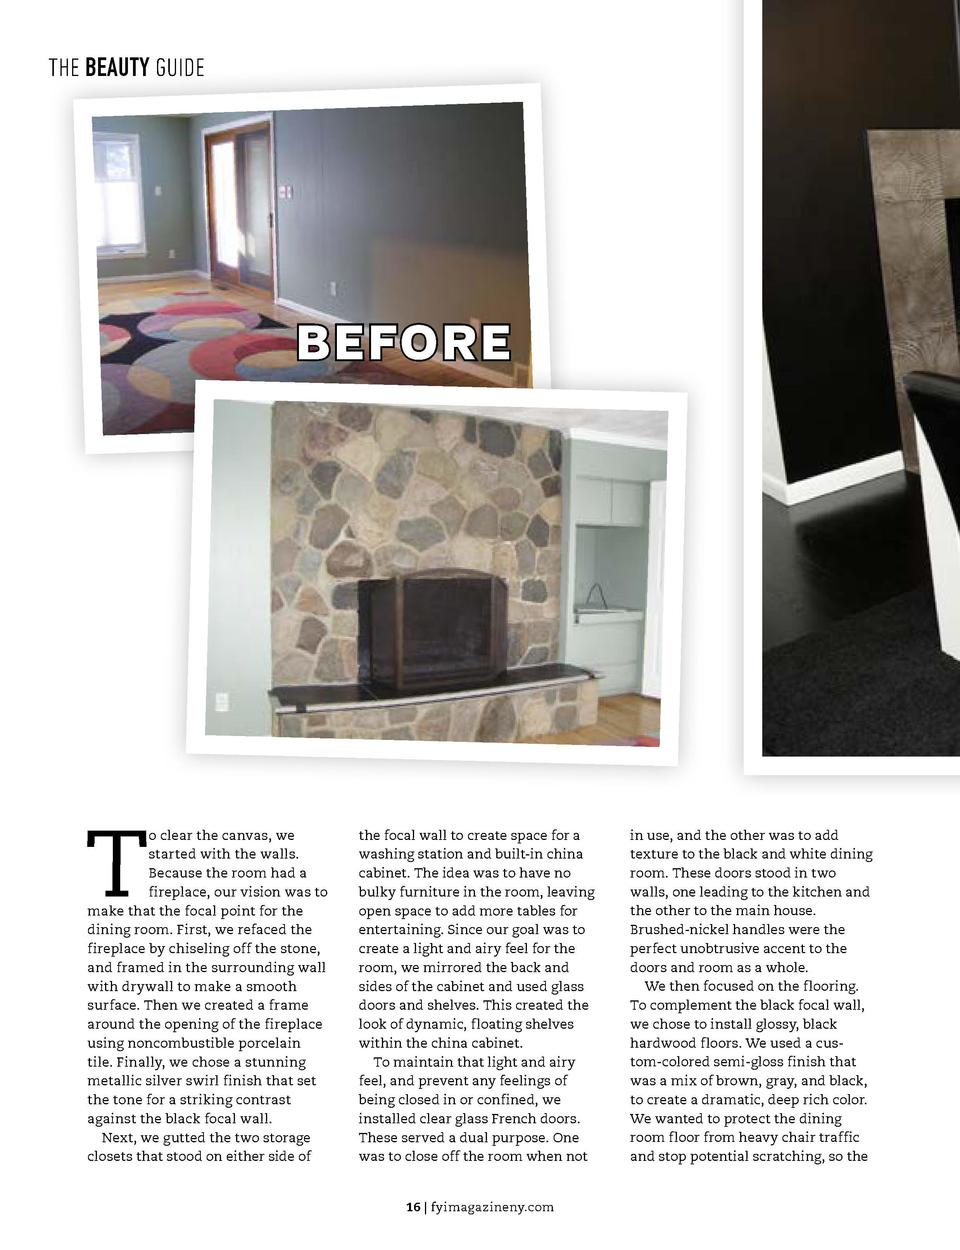 THE BEAUTY GUIDE  THE BEAUTY GUIDE  BEFORE  AFTER  T  o clear the canvas, we started with the walls. Because the room had ...